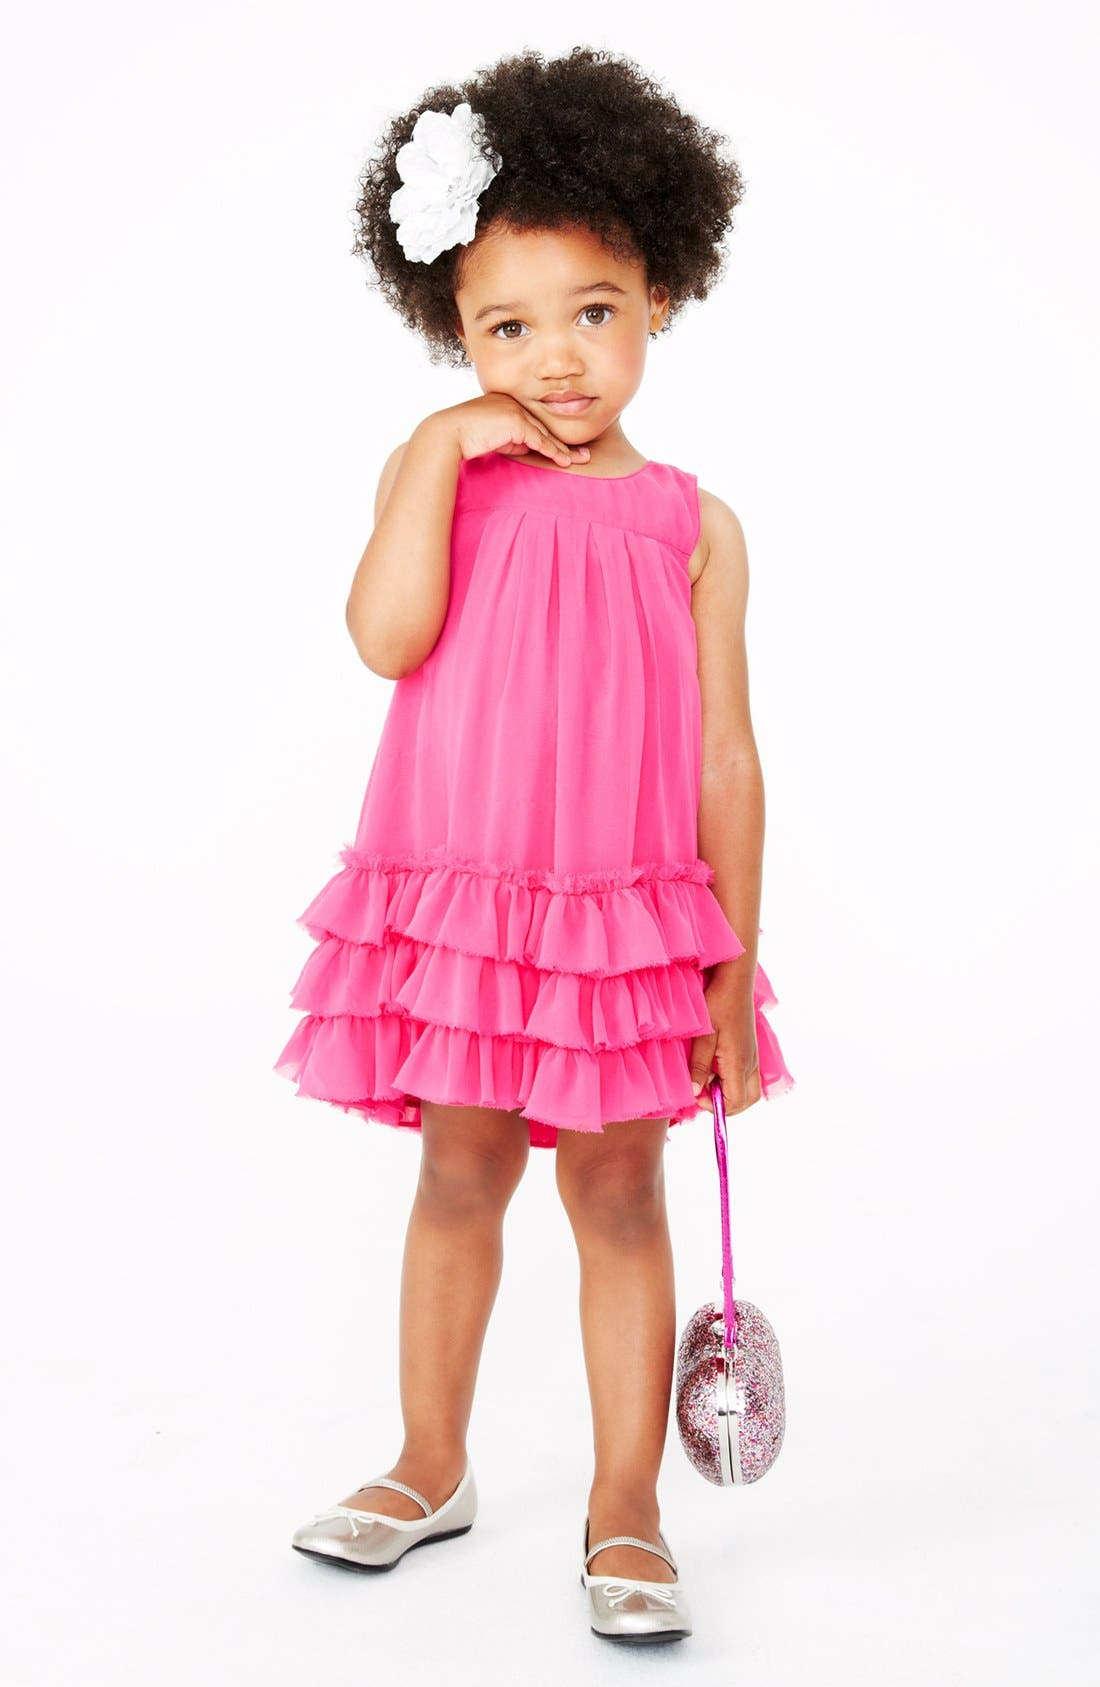 Alternate Image 1 Selected - Pippa & Julie Chiffon Dress & Accessories (Toddler Girls)